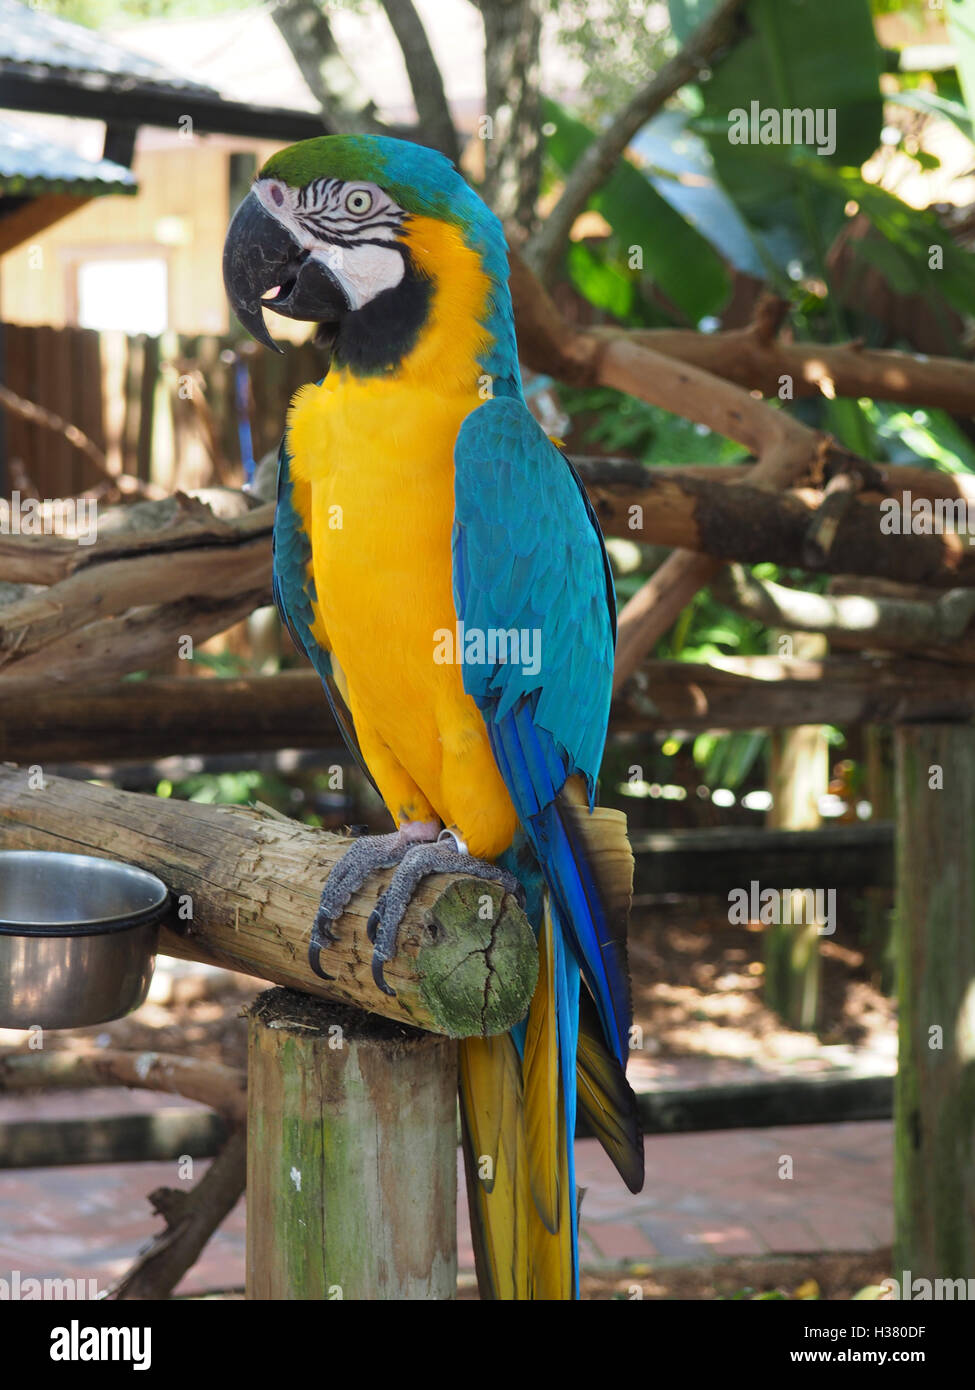 bright colored macaw parrot sitting on a wood perch - Stock Image